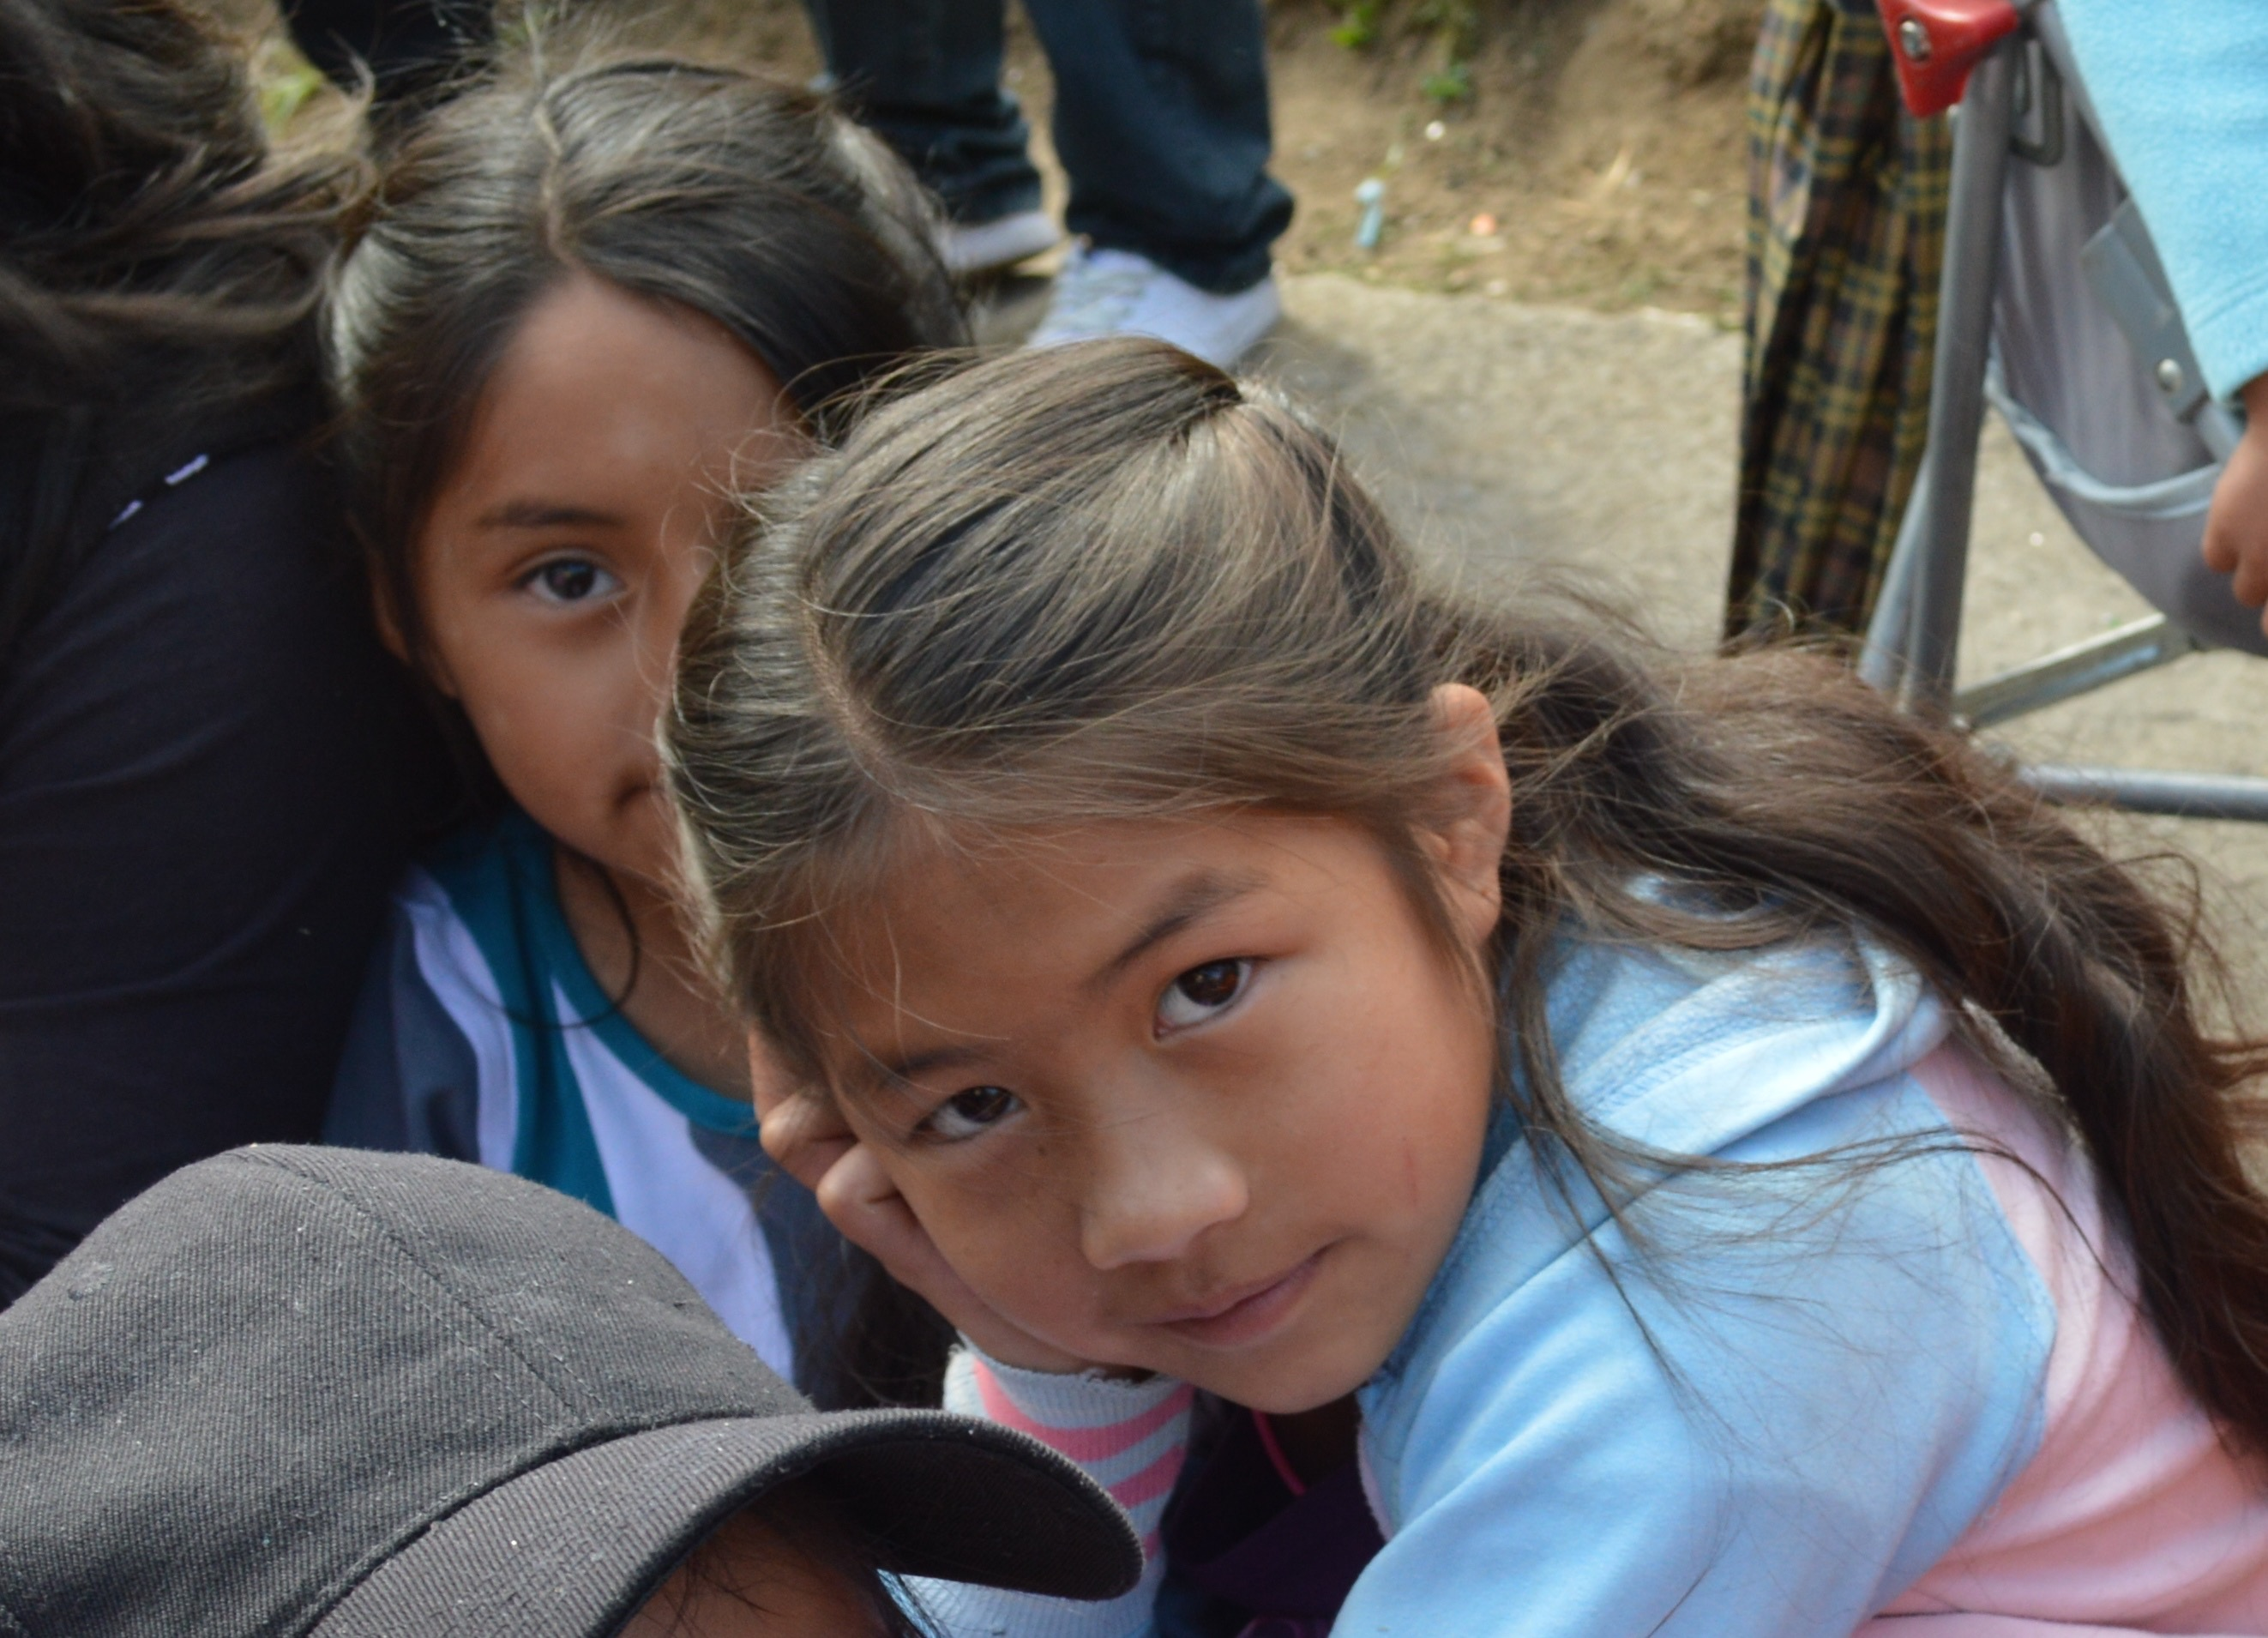 Caro is one of hundreds of Quito Kids served over the years